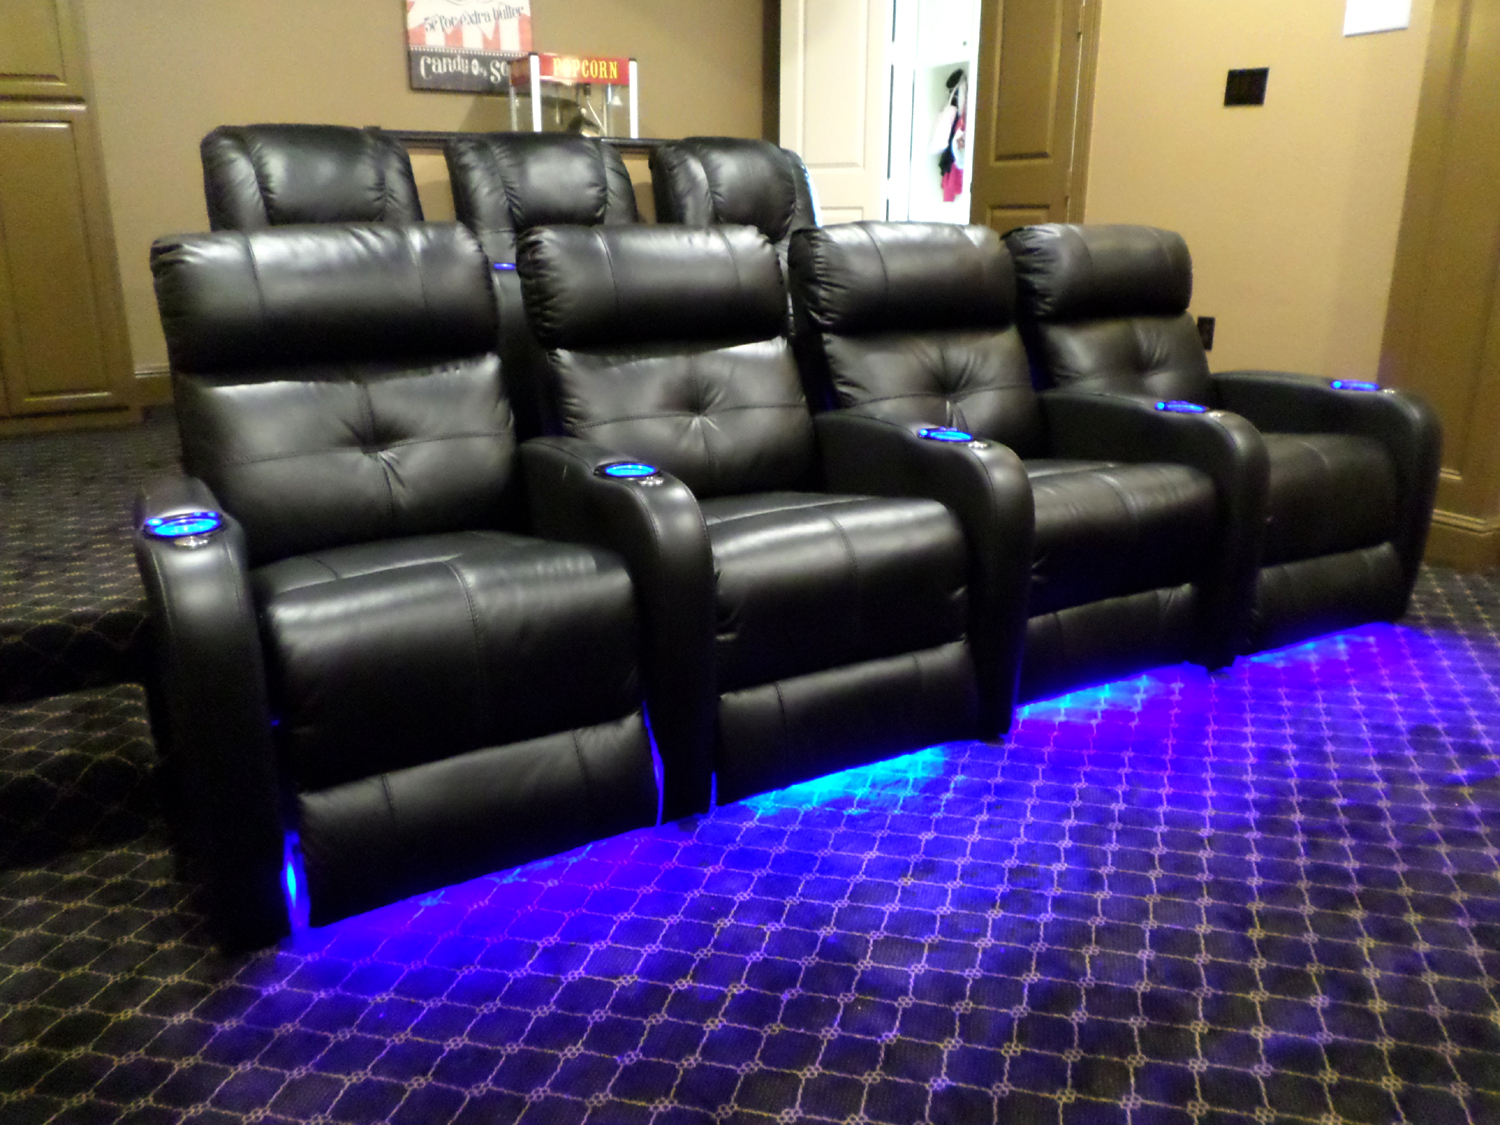 home theater chair knoll bertoia diamond seating by palliser delivered in dfw mccabe